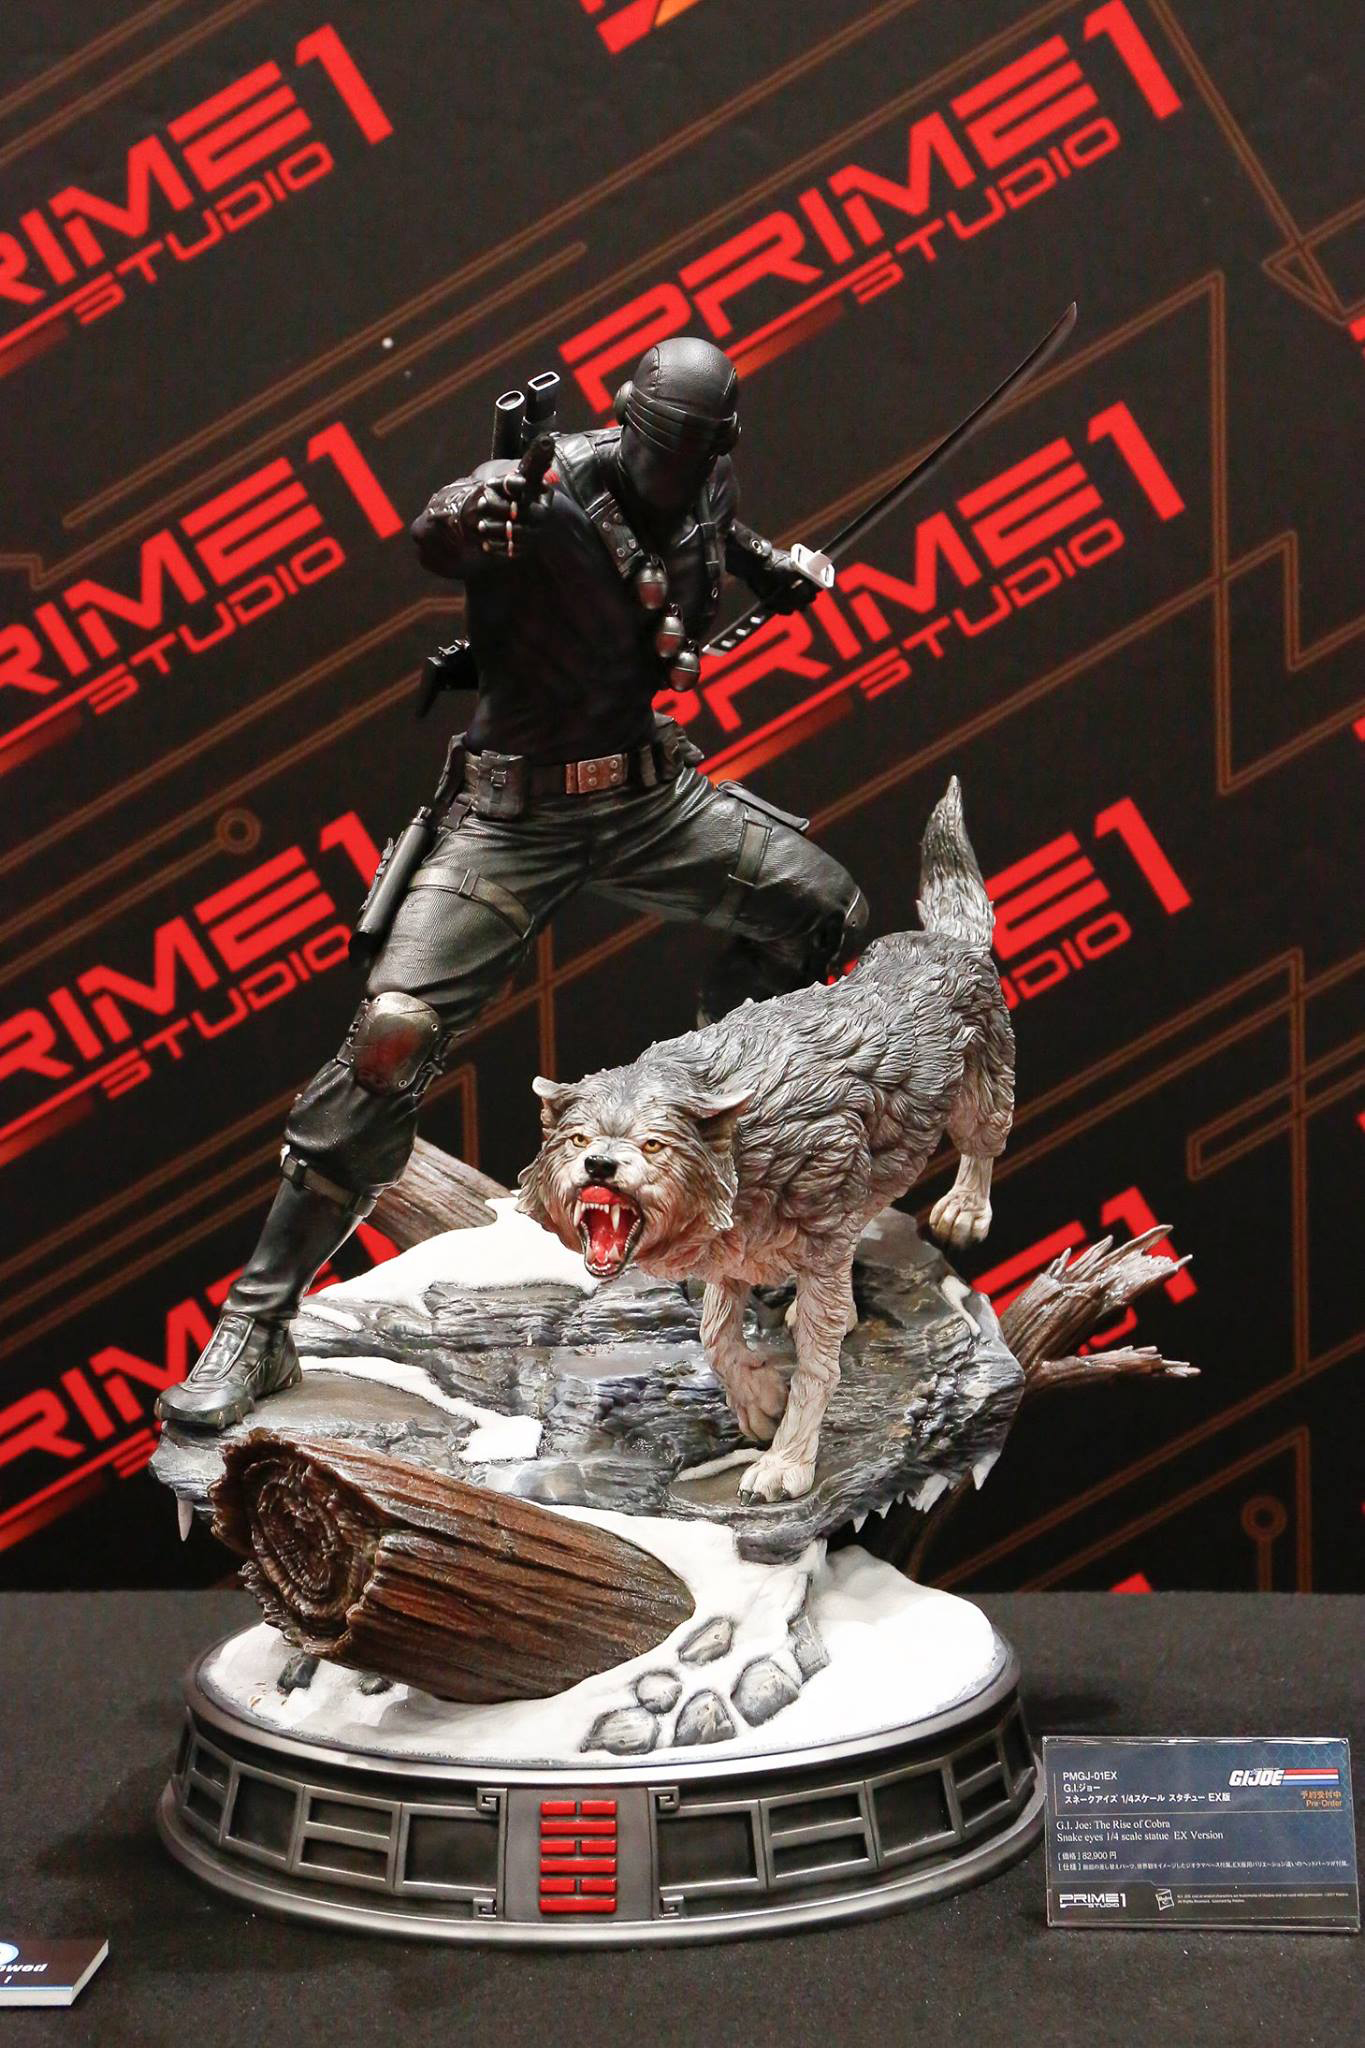 prime-1-studio-gi-joe-snake-eyes-statue